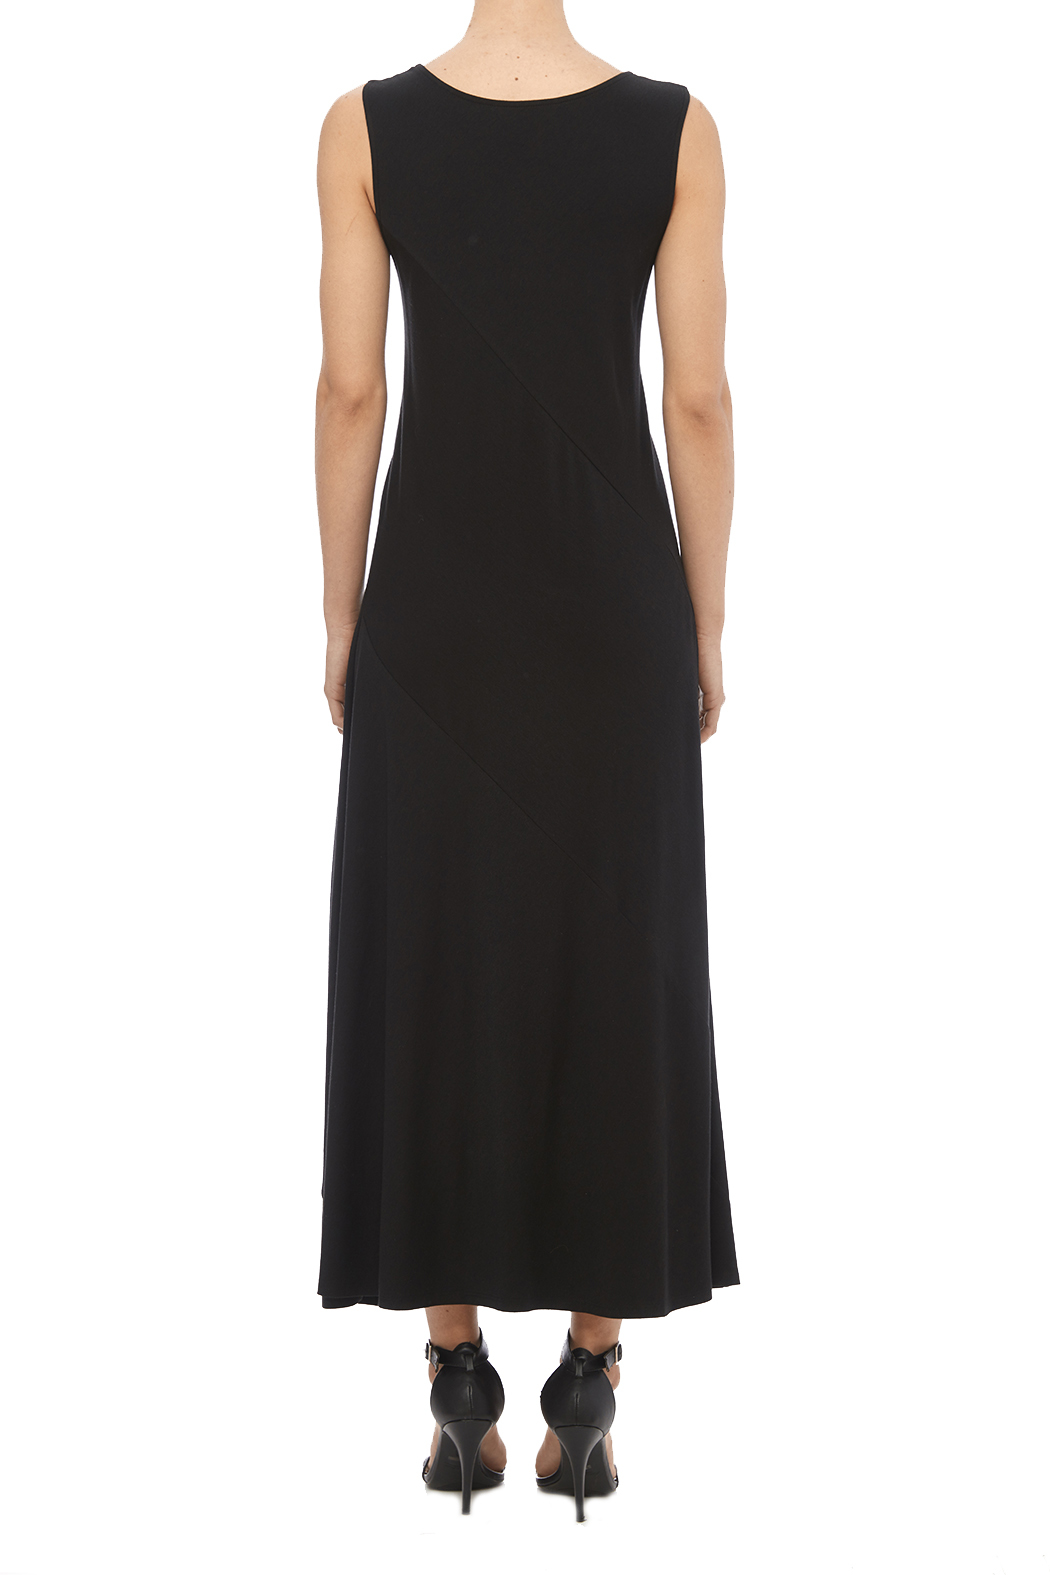 Chalet Black Tank Dress - Back Cropped Image